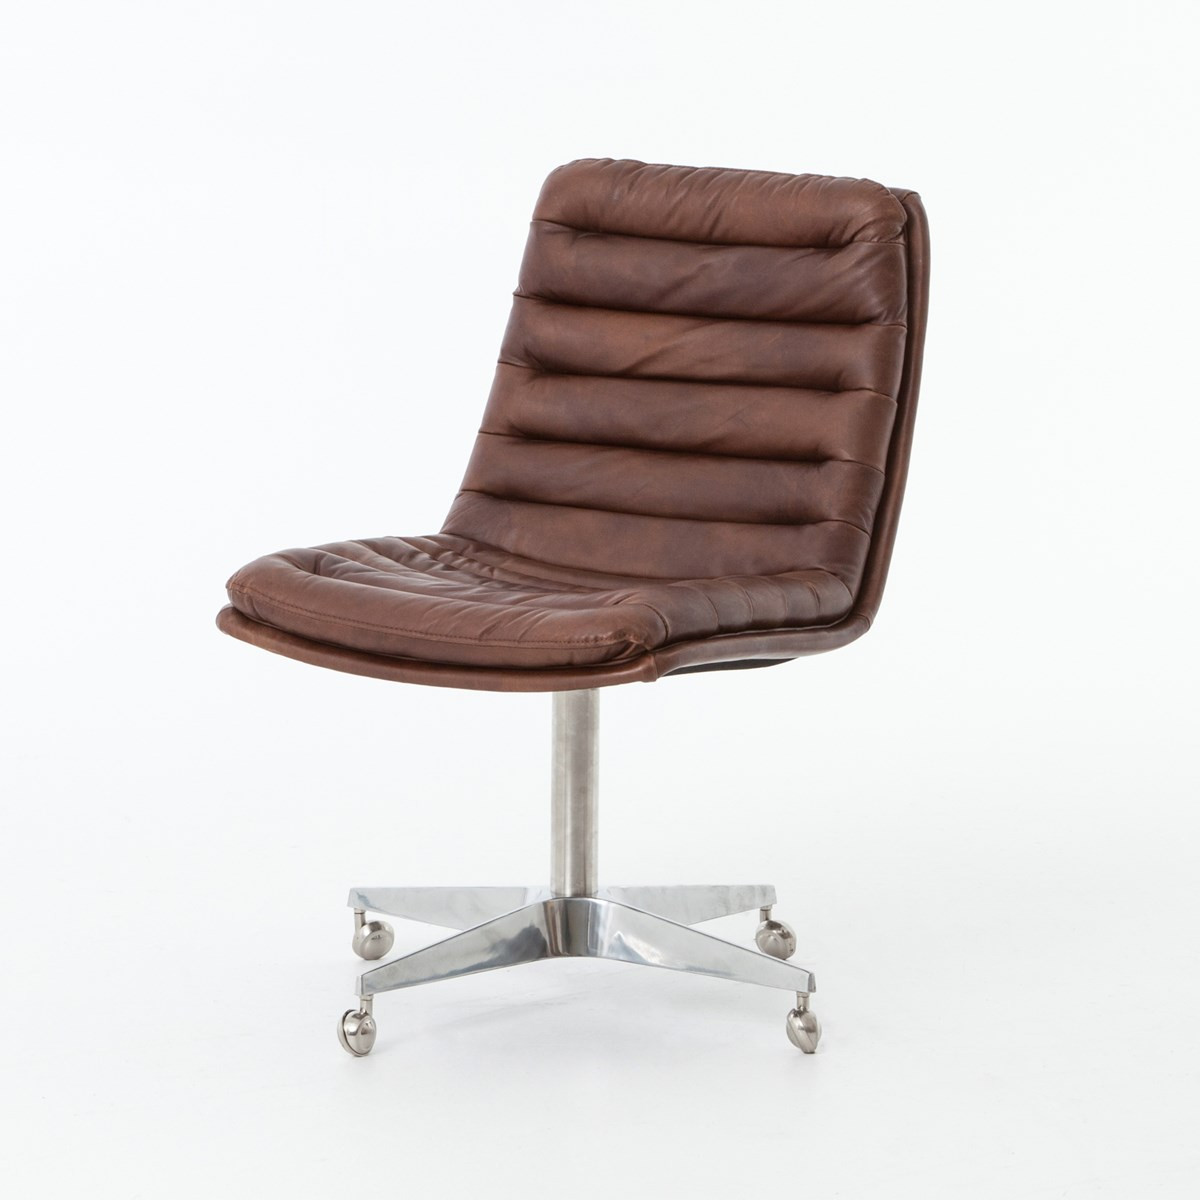 Armless leather desk chair - Malibu Distressed Whiskey Leather Office Desk Chair